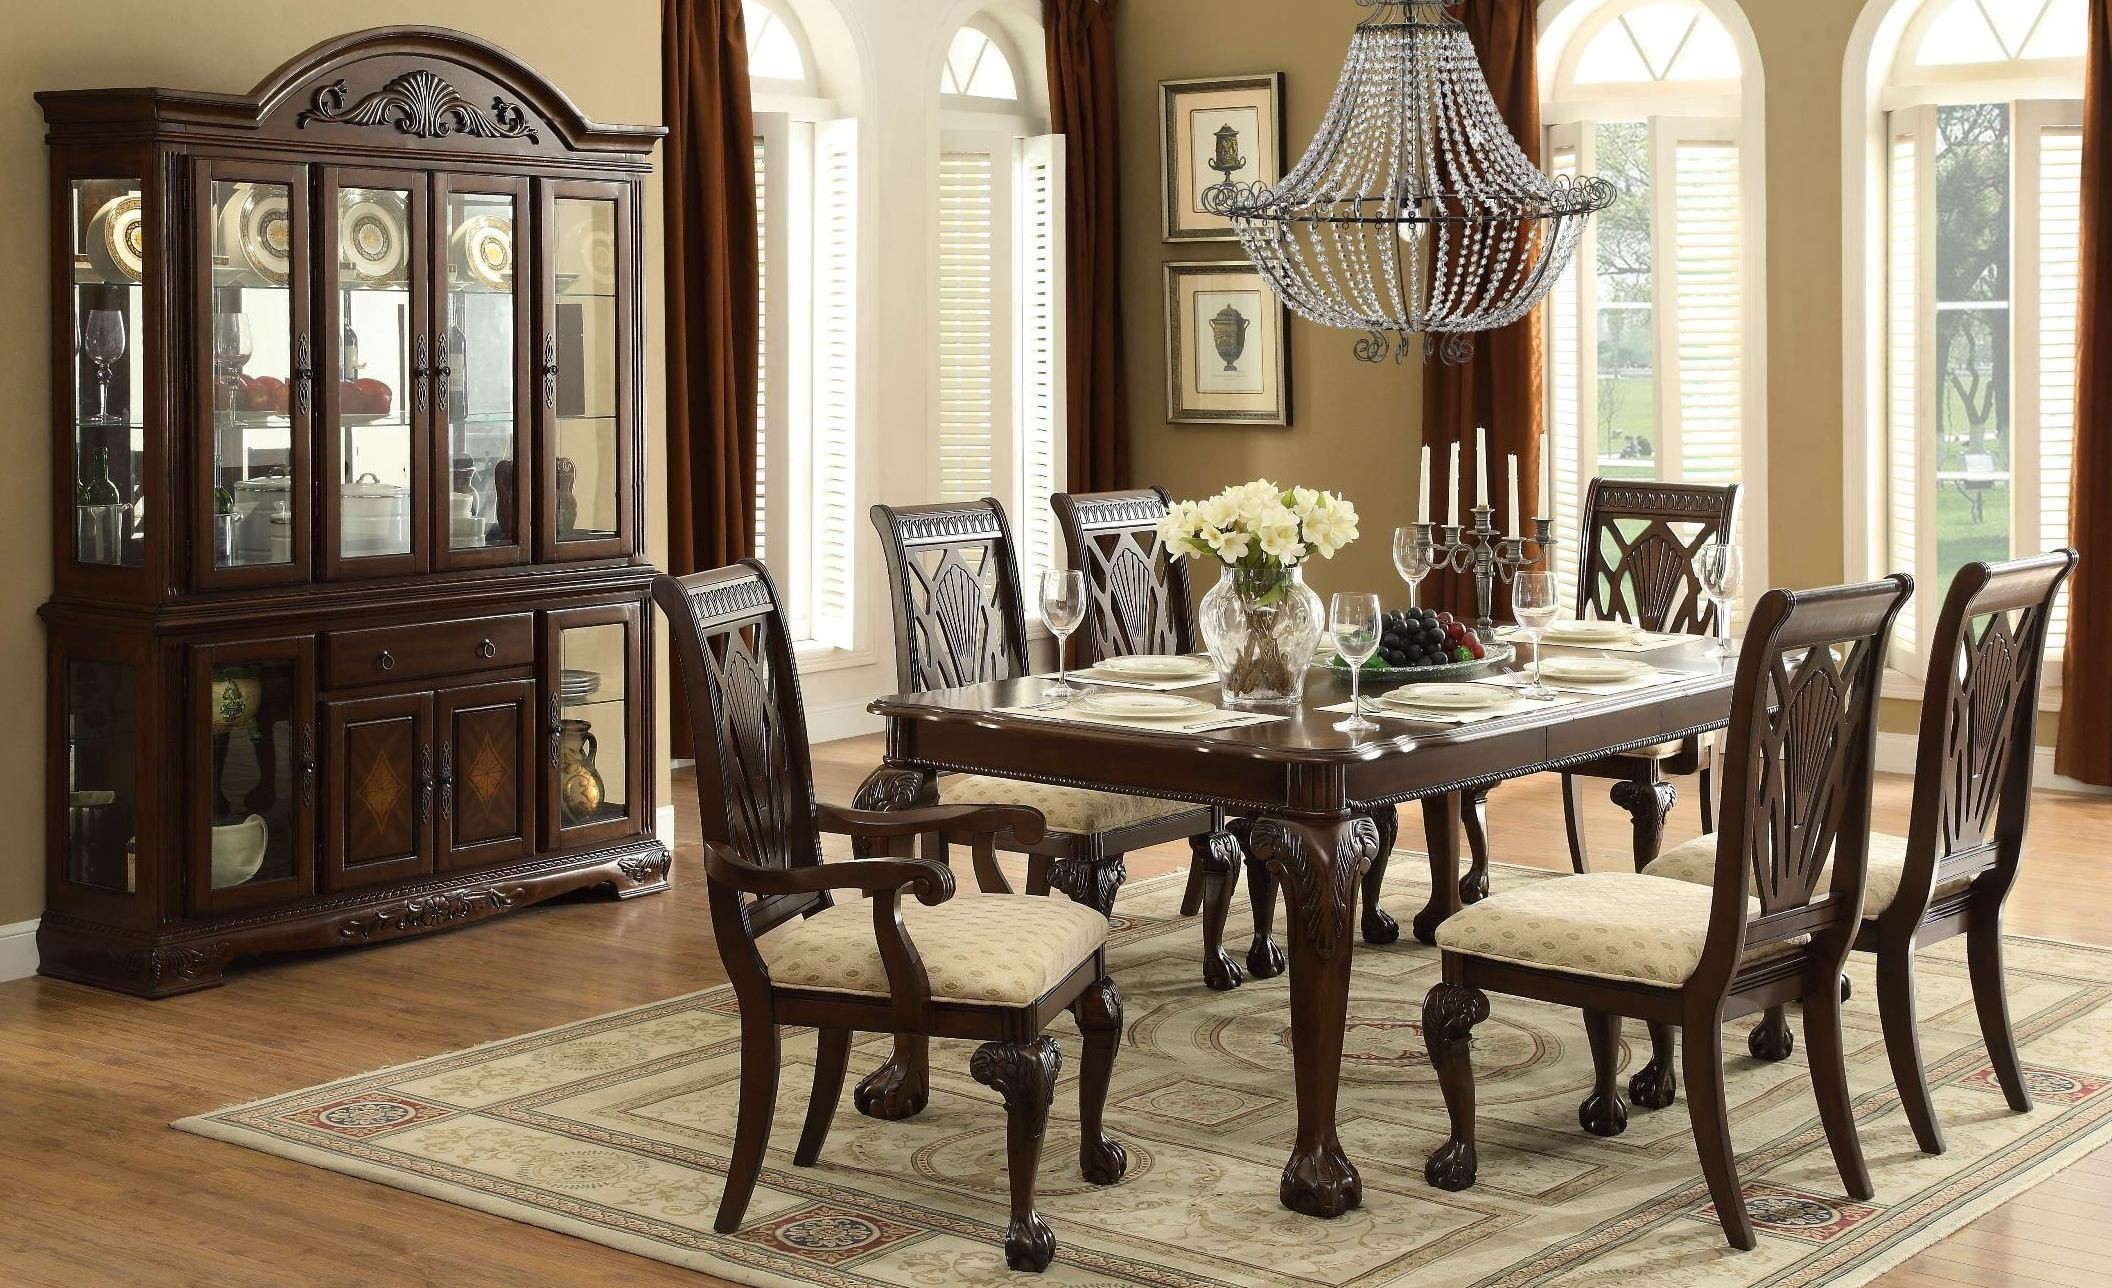 Norwich Warm Cherry Leg Dining Room Set from Homelegance ...